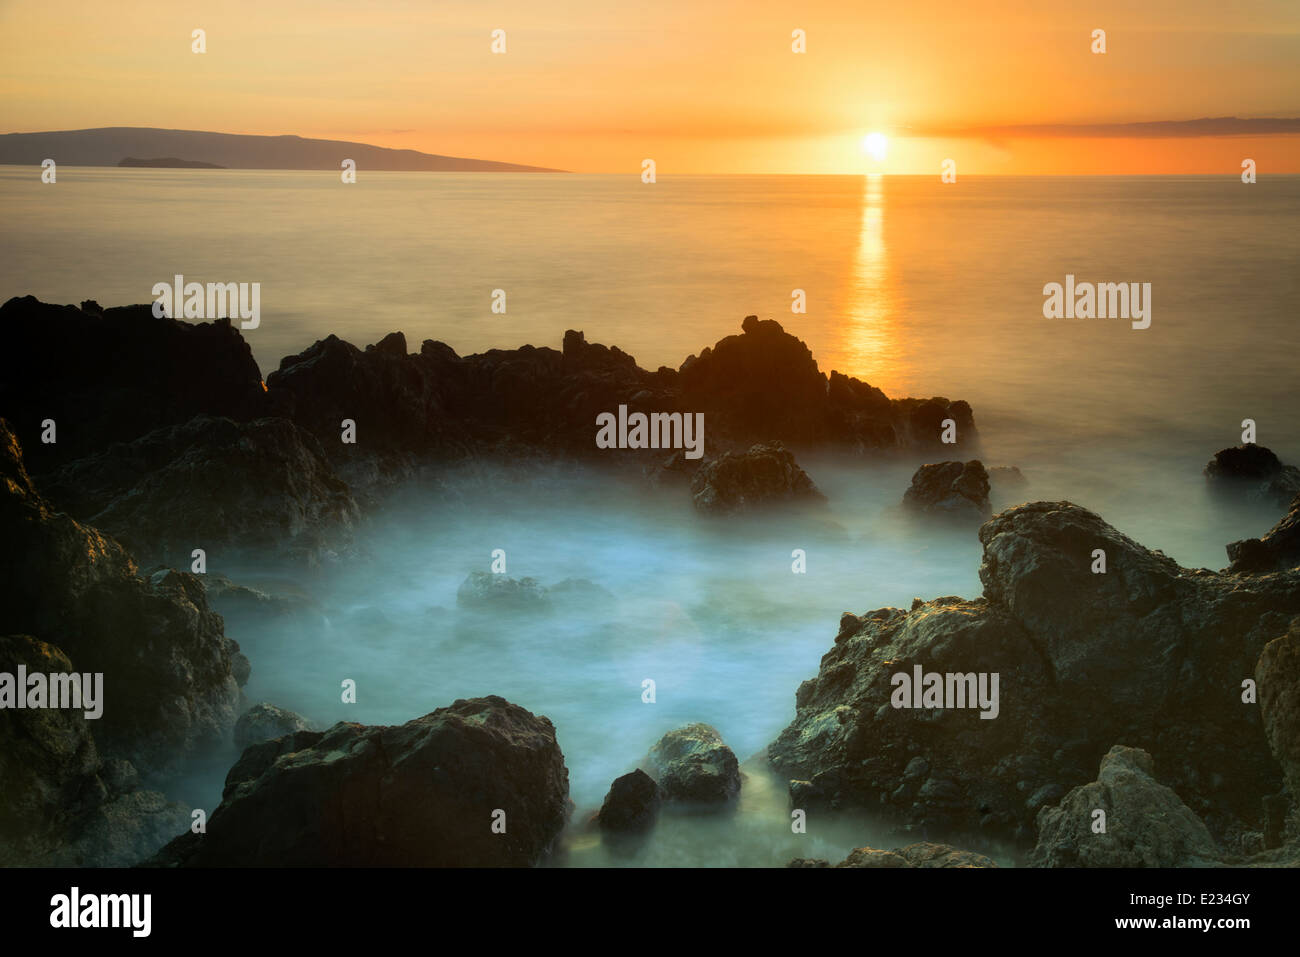 Sunset and rocky coastline. Maui, Hawaii - Stock Image